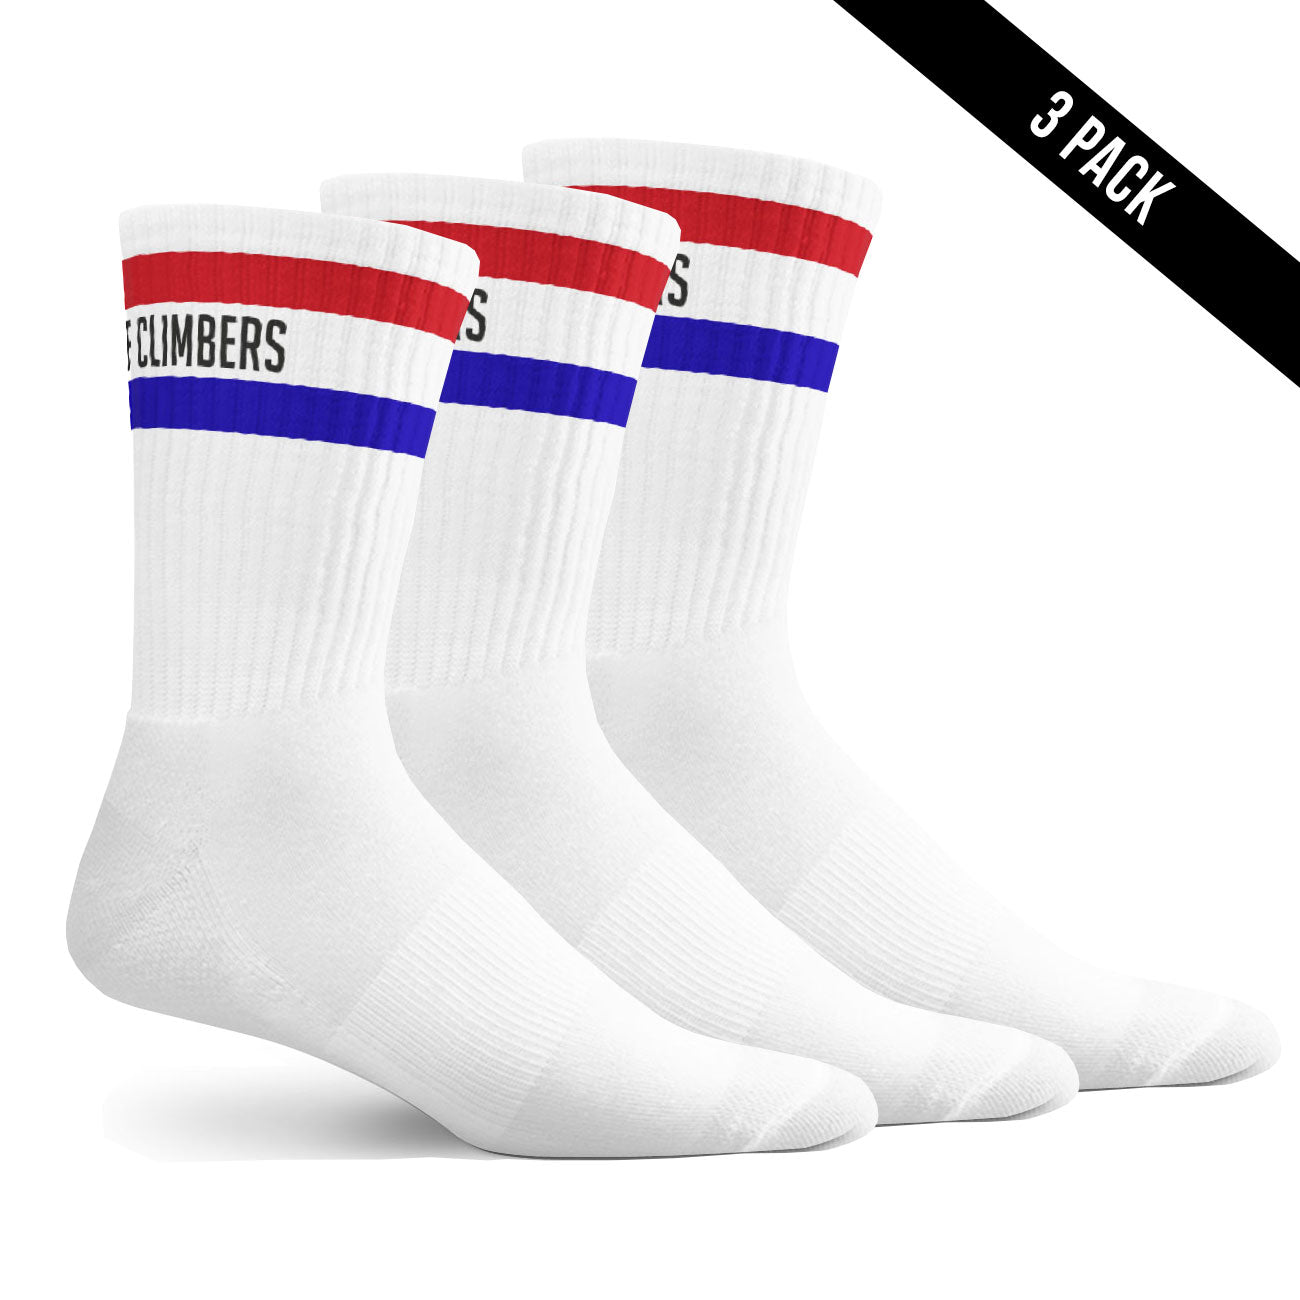 Band of Climbers Crew Sock - 3 pack - Retro